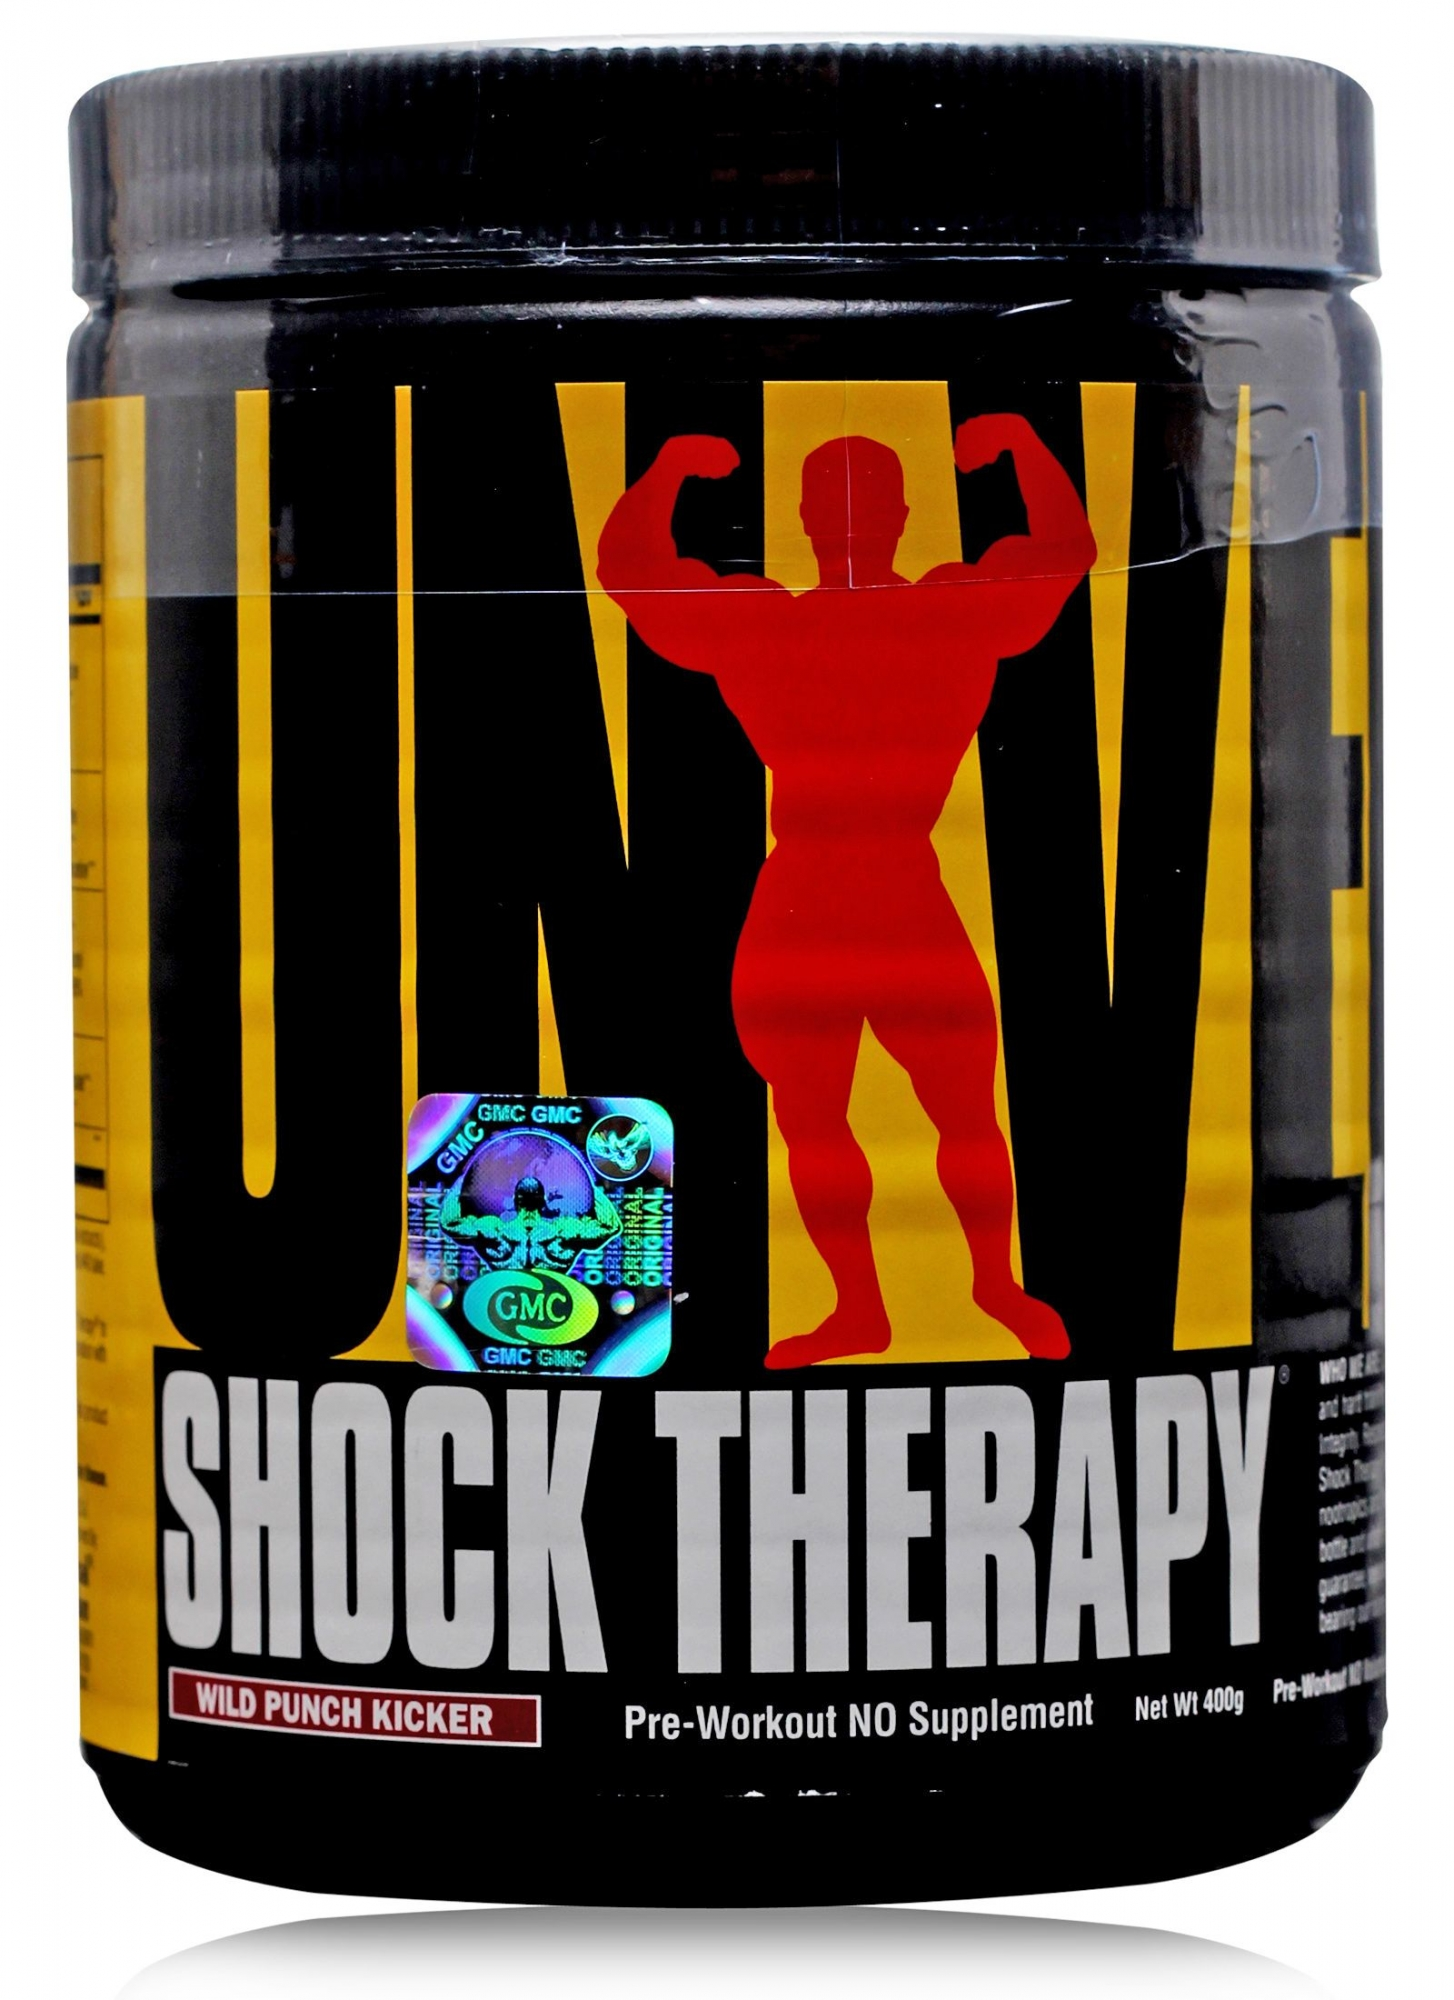 UNIVERSAL SHOCK THERAPY PRO PRICE INDIA